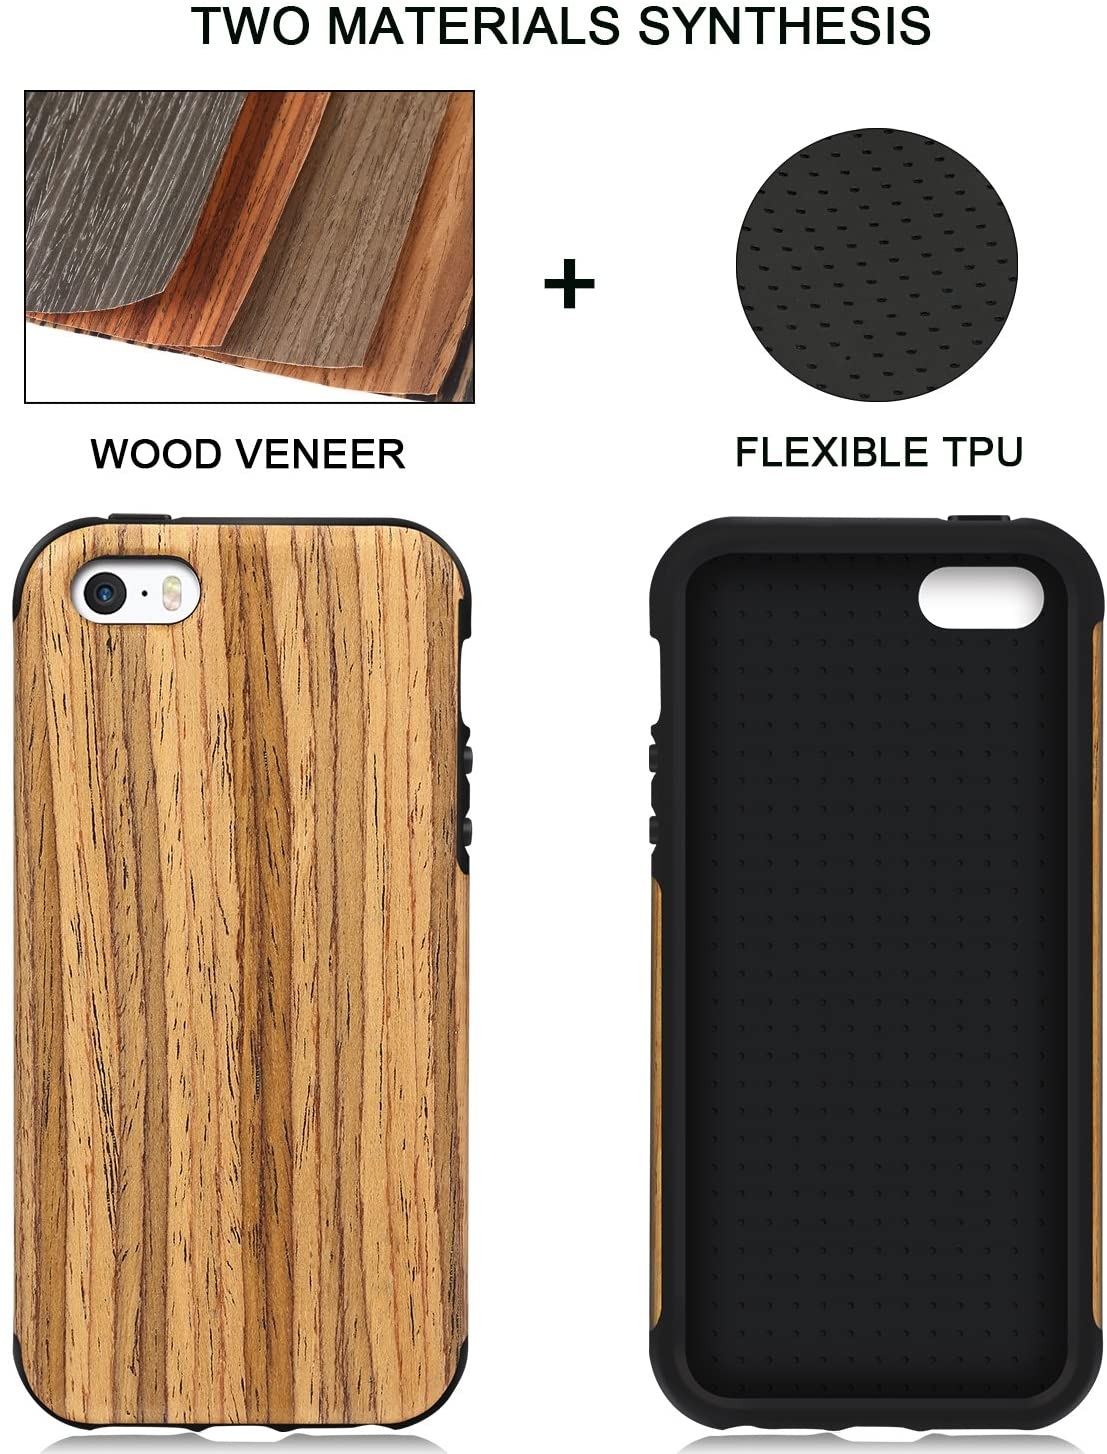 TENDLIN iPhone SE Case Wood Veneer Flexible TPU Silicone Hybrid Good Protection Case for iPhone SE and iPhone 5S 5